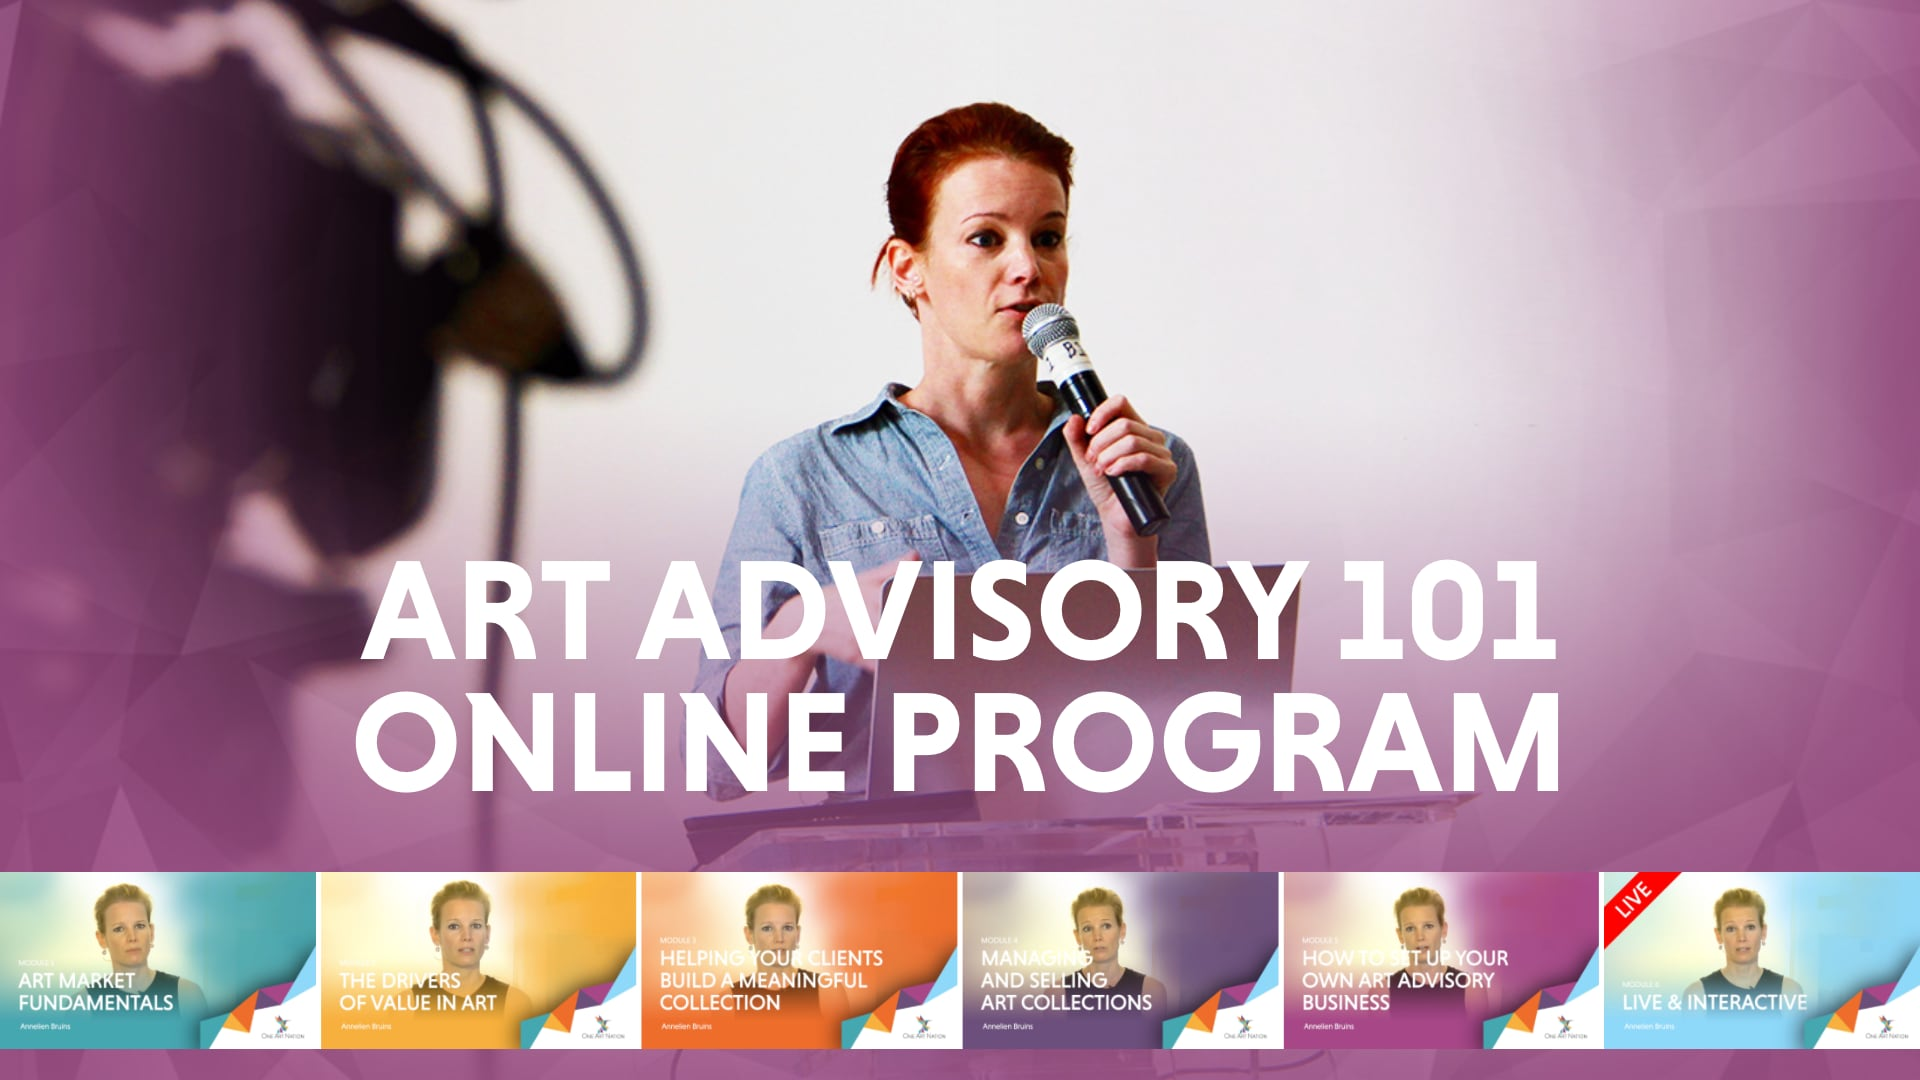 Art Advisory 101 Online Program